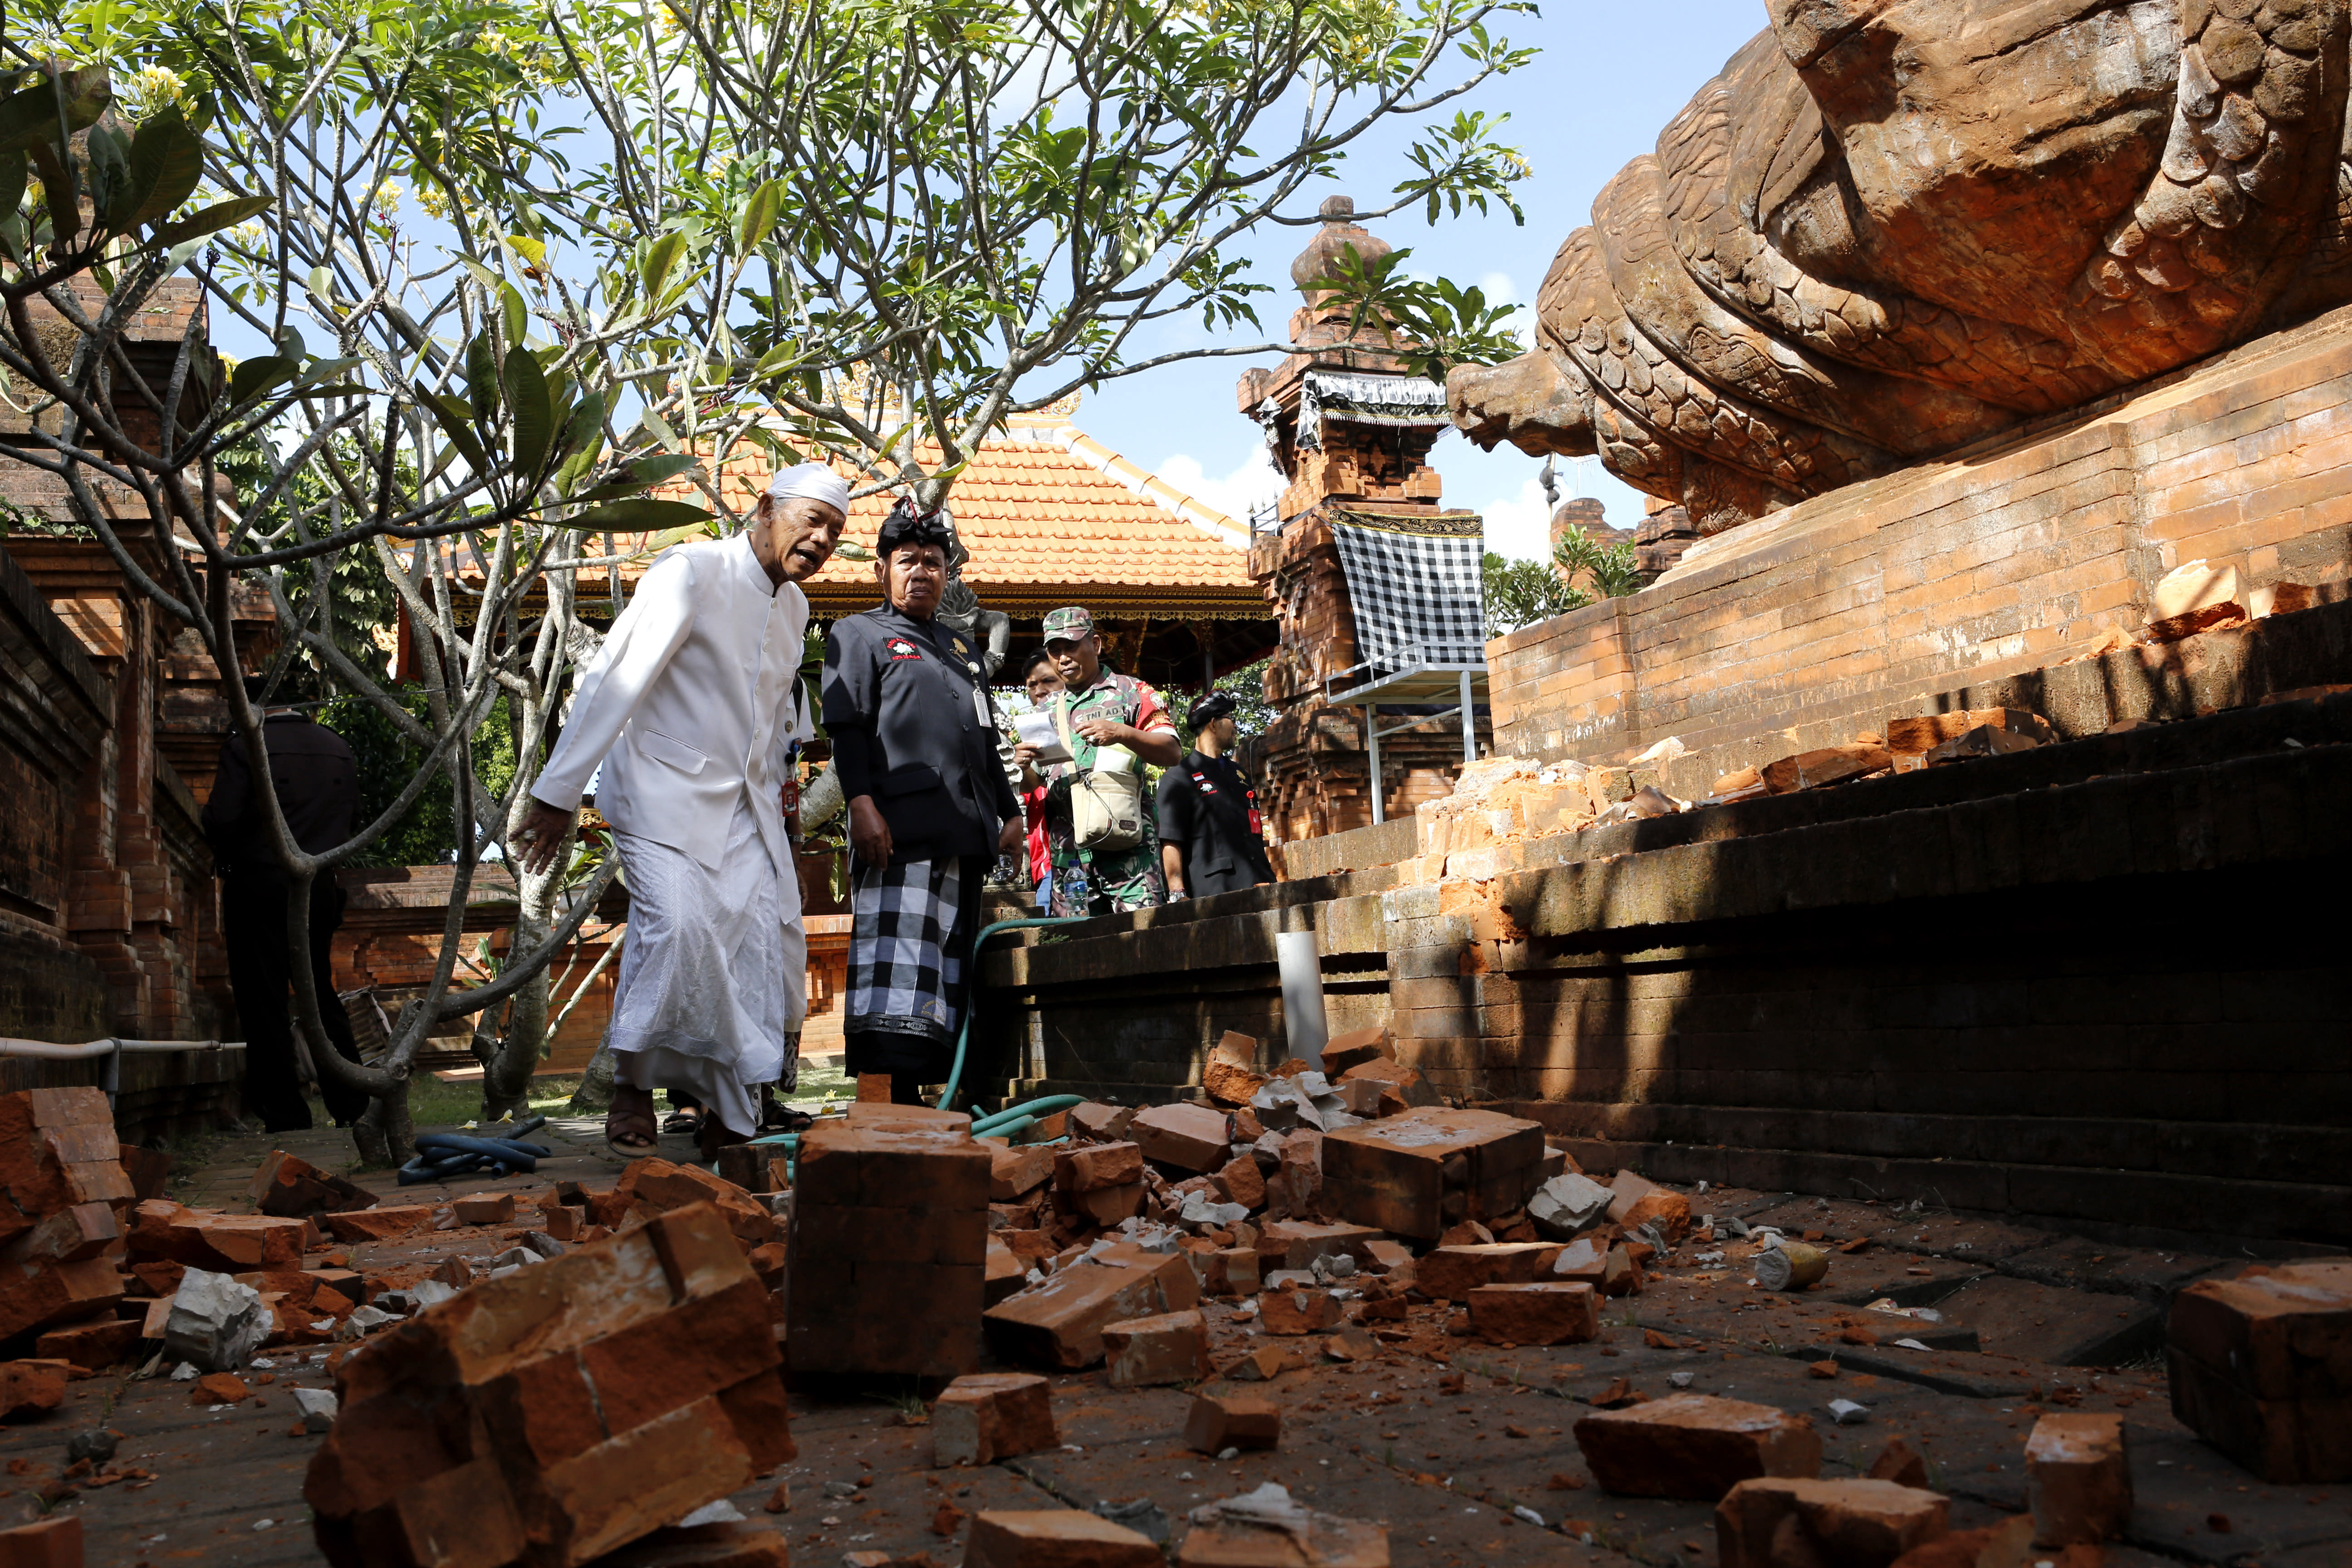 Balinese men check a damaged temple in Bali, Indonesia Tuesday, July 16, 2019. Indonesian authorities say a subsea earthquake shook Bali, Lombok and East Java on Tuesday, causing damage to homes and temples. (AP Photo/Firdia Lisnawati)